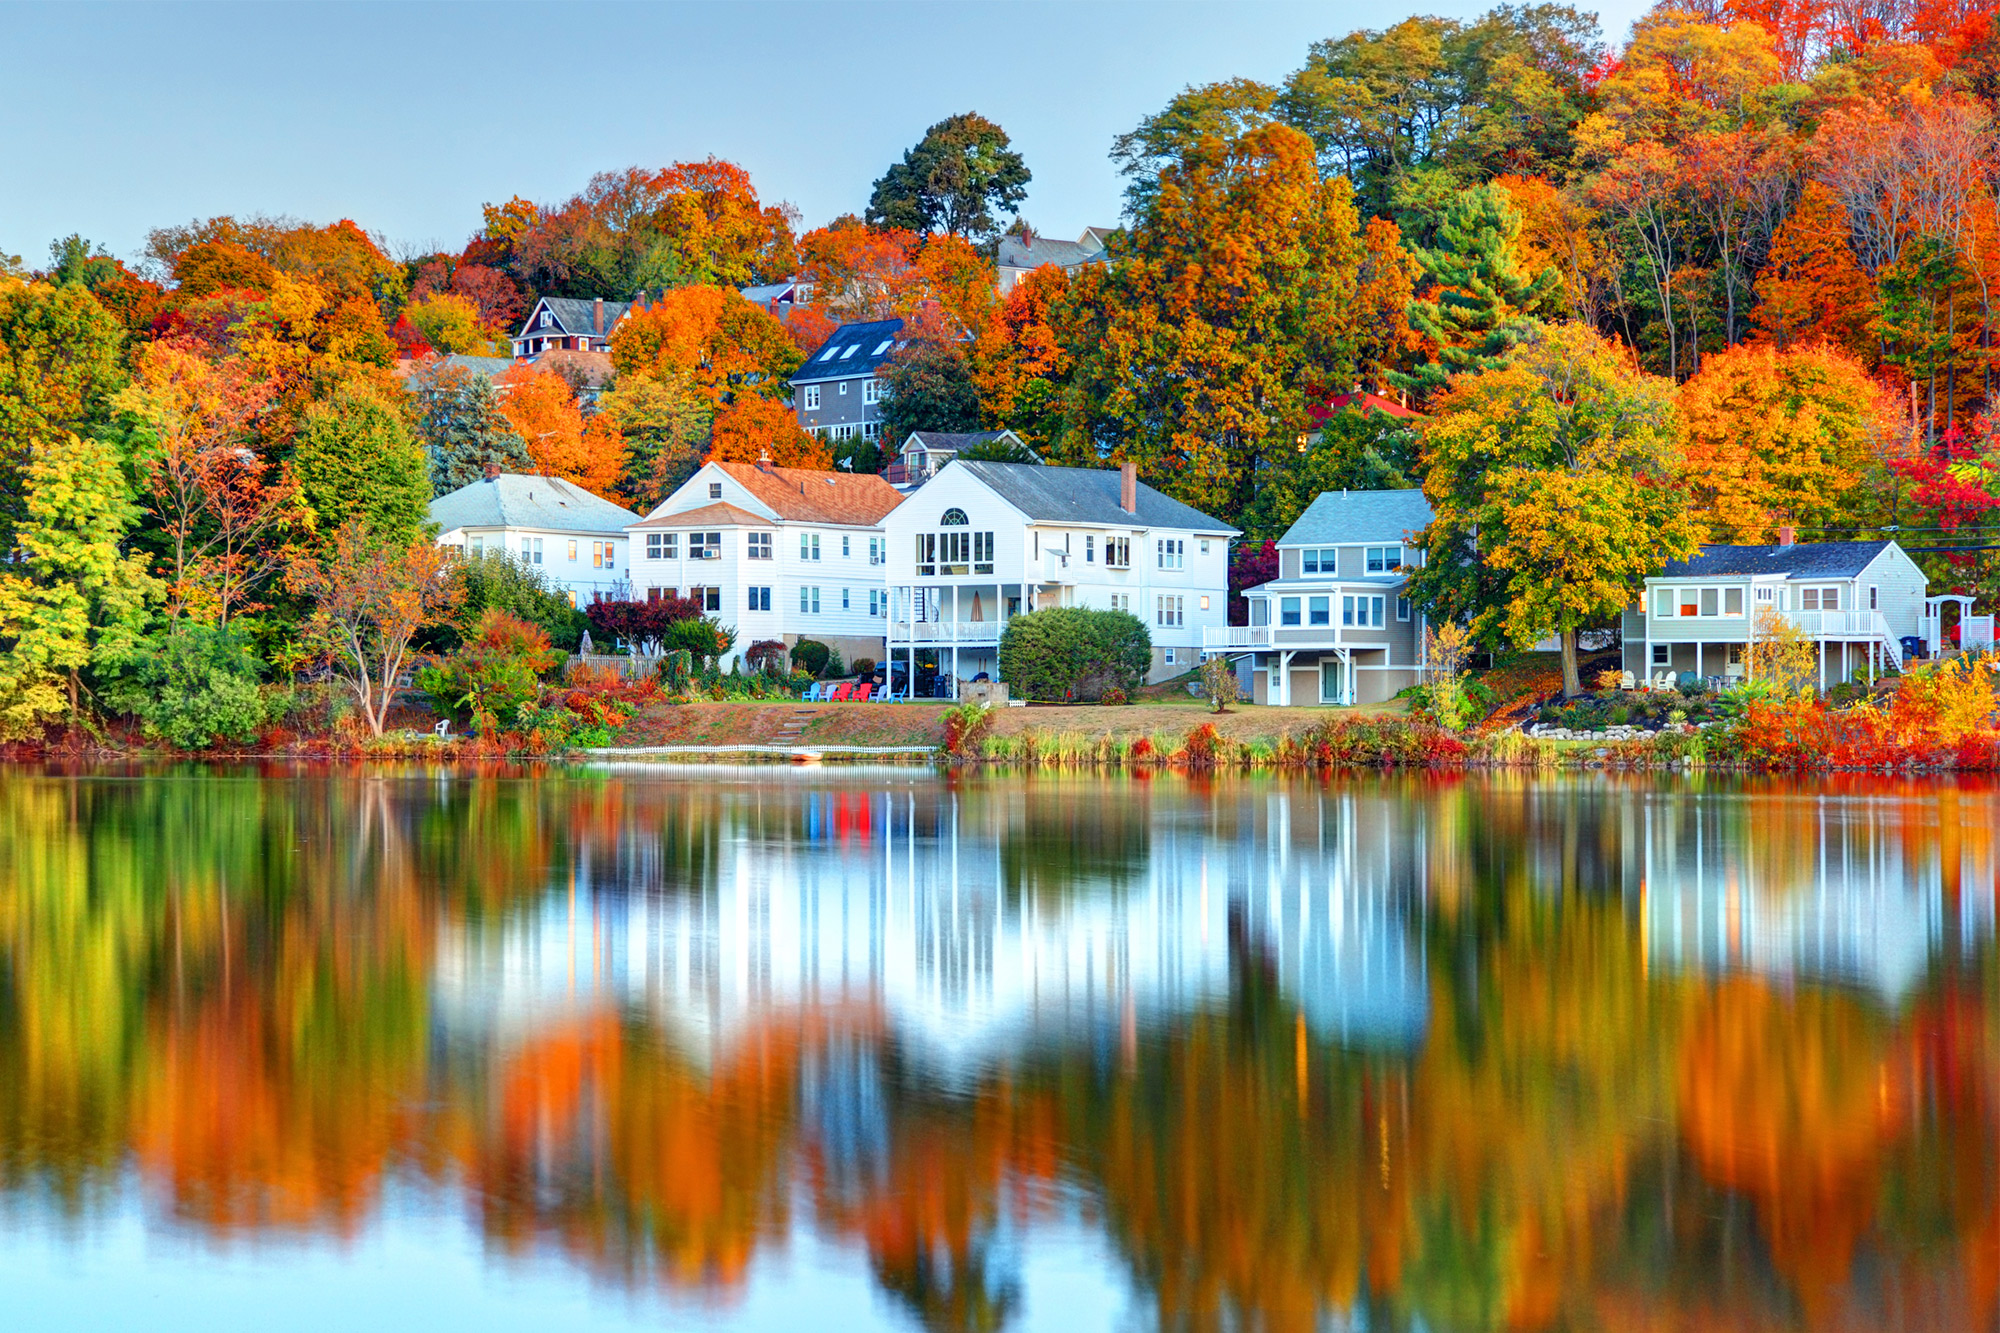 Buying a Home This Fall? Don't Overlook These 6 Thing - Vera ...